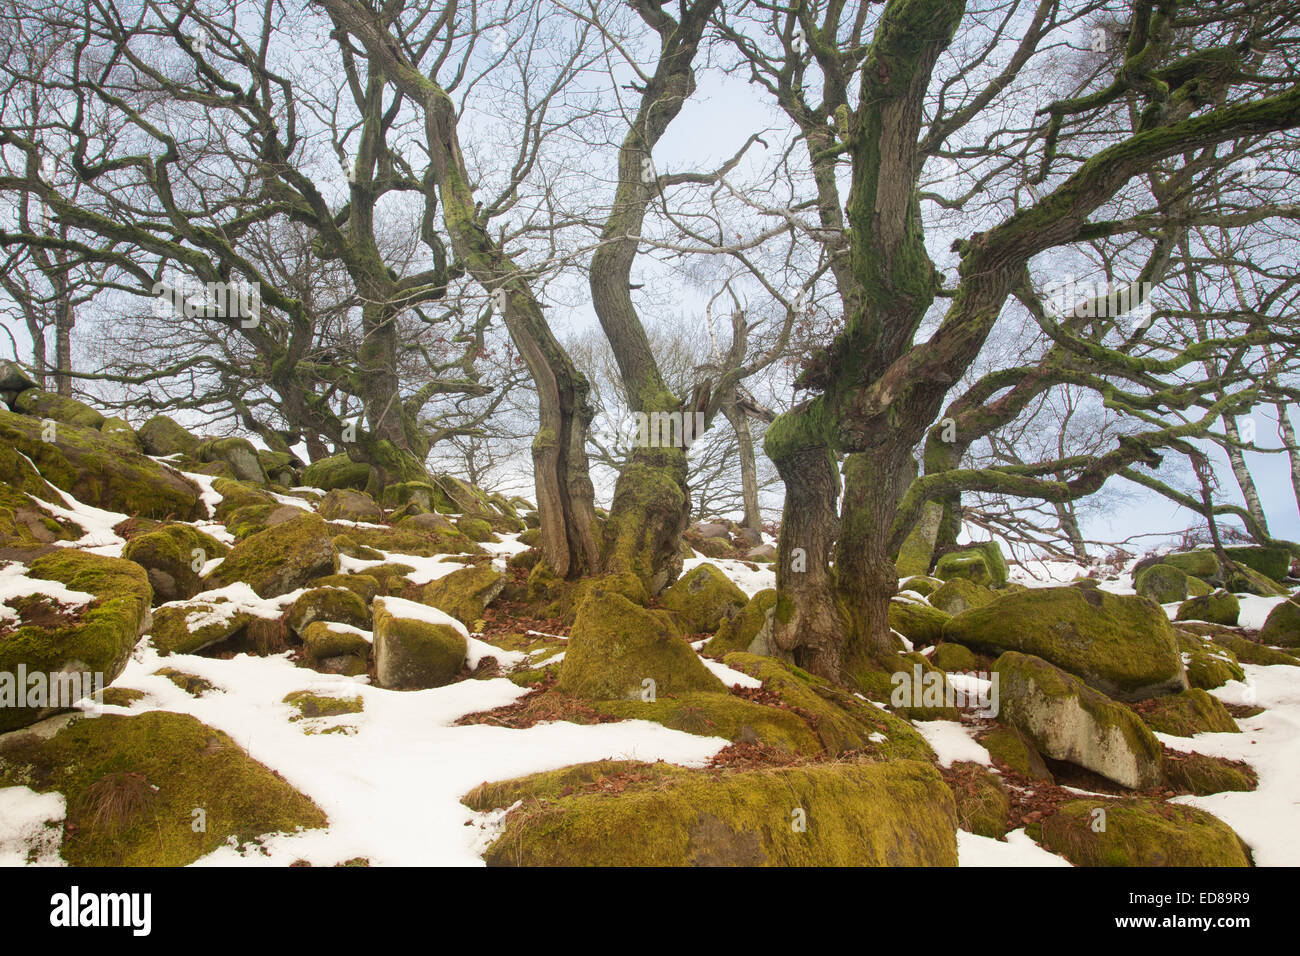 Ancient woodland in winter, Padley Gorge - Stock Image